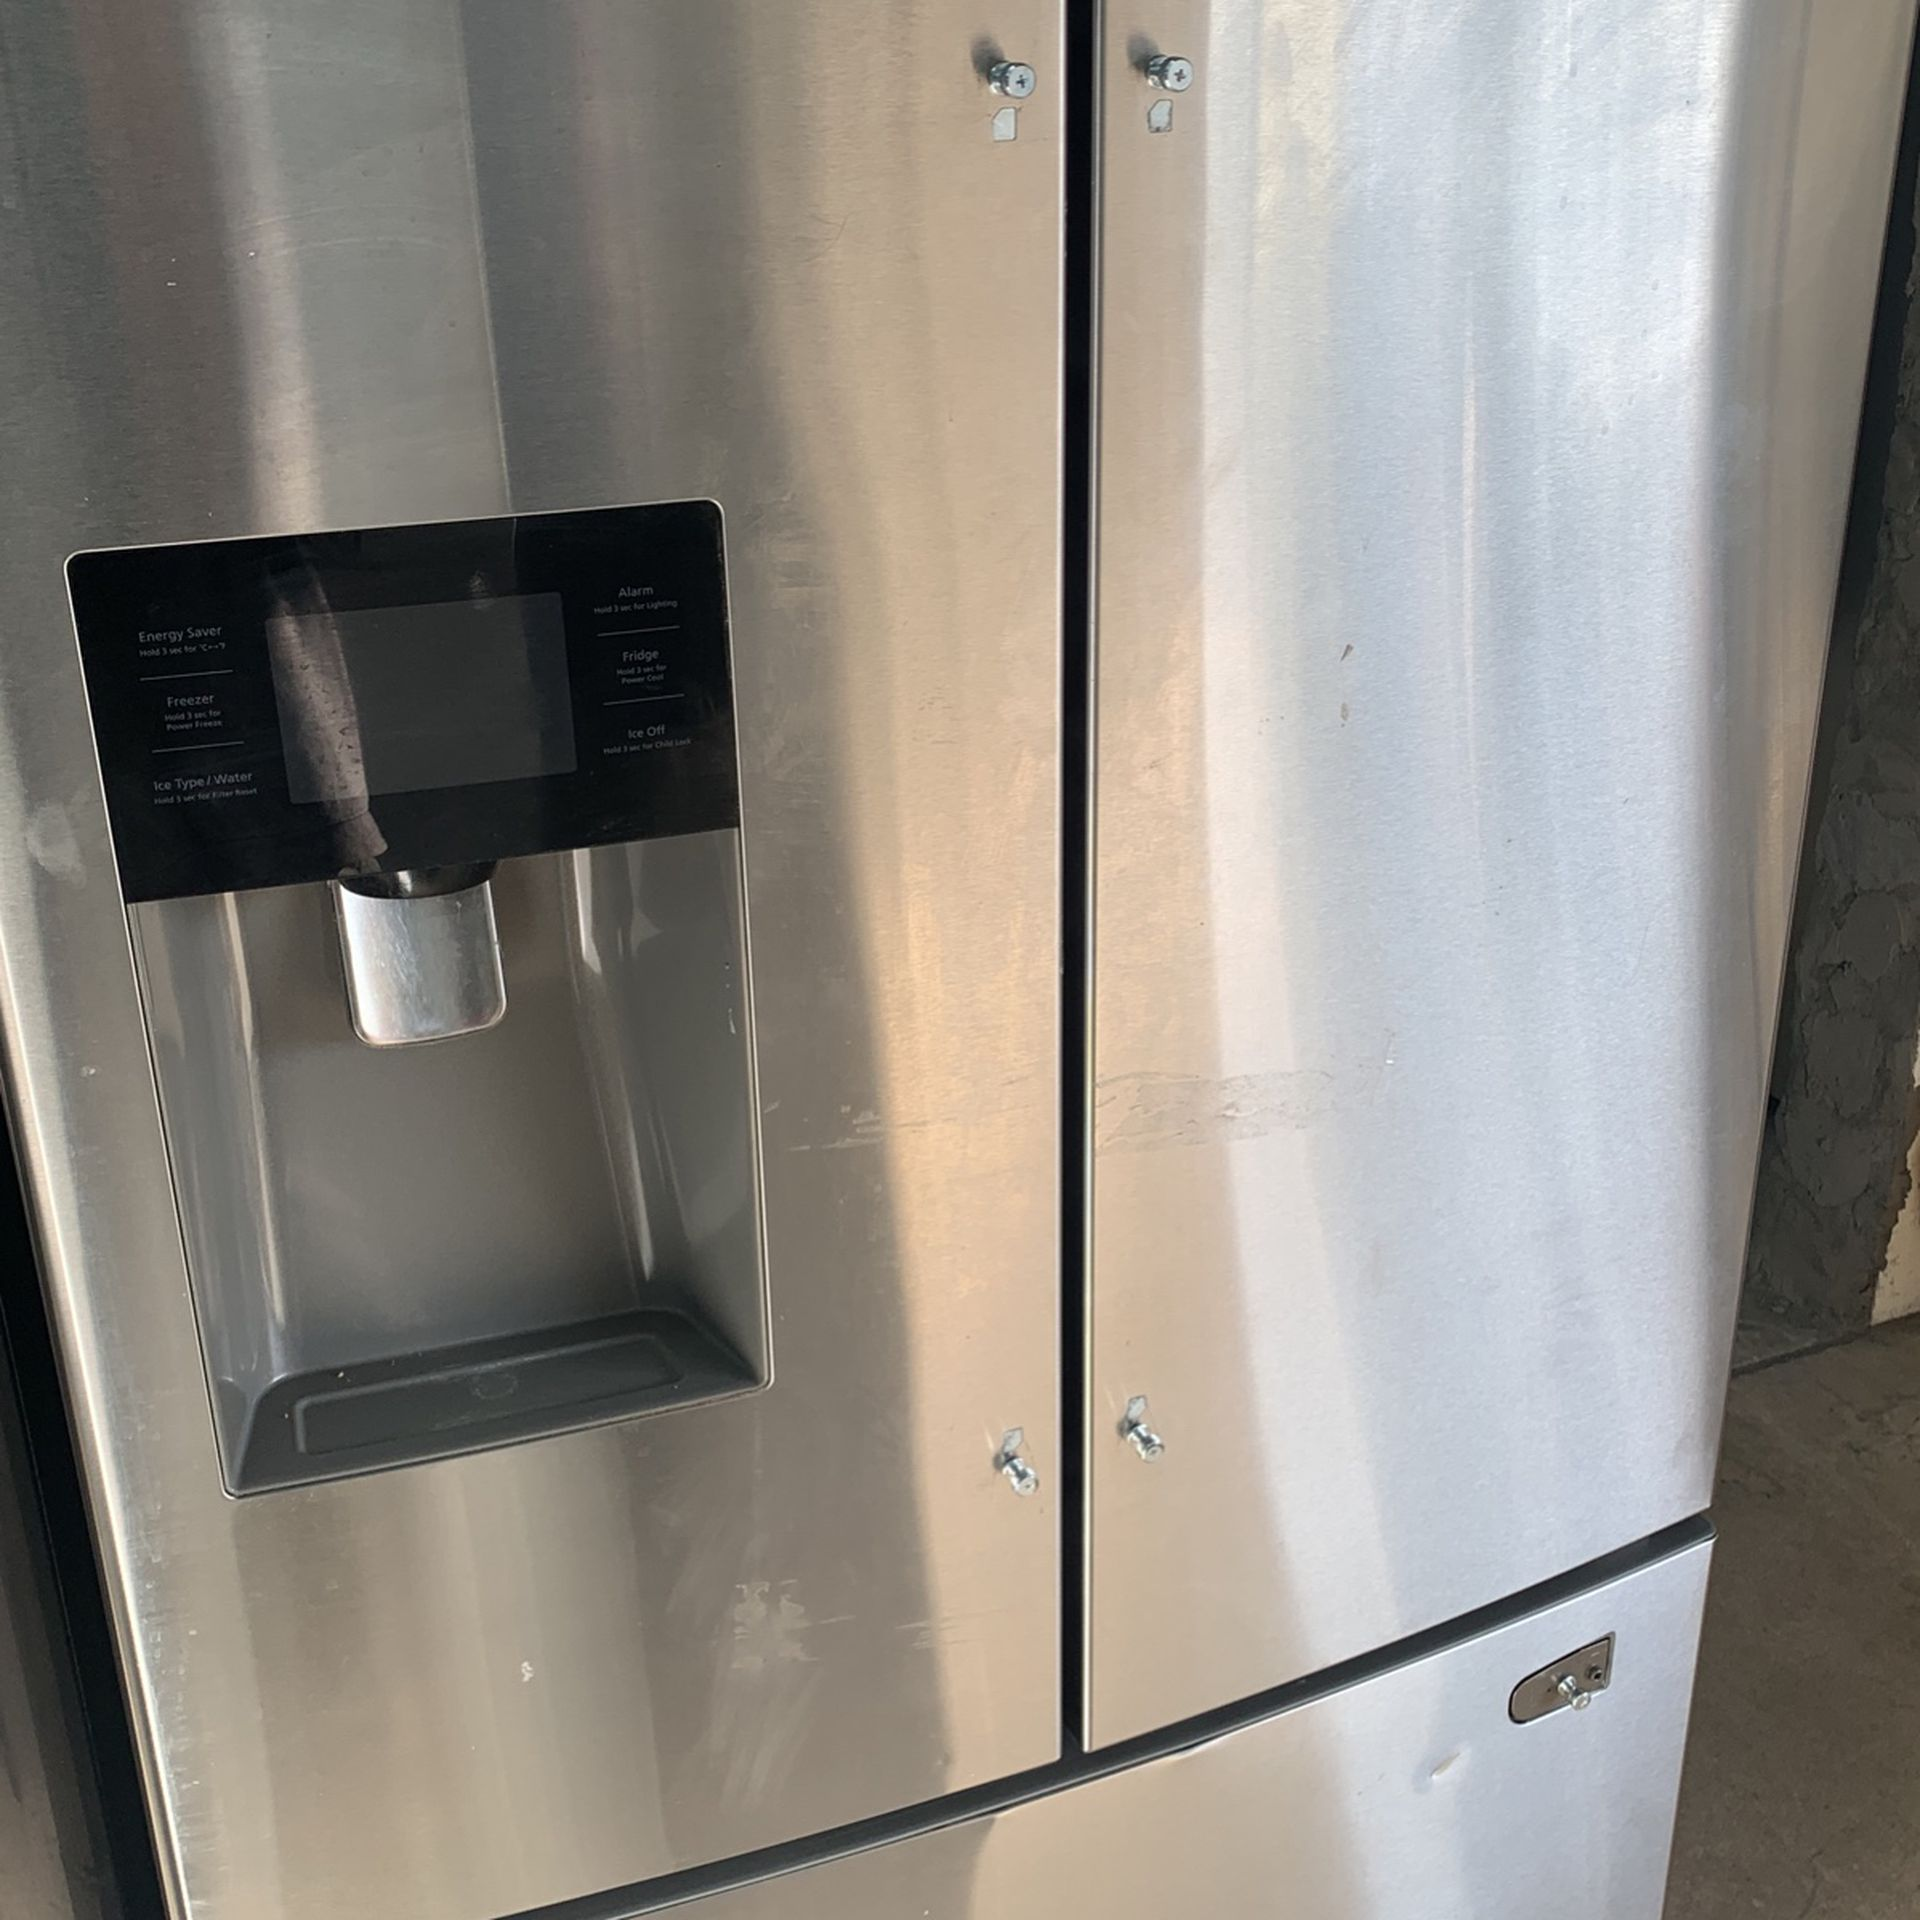 Samsung Refrigerator As Is Dent And Scratch / 1 Year Warranty